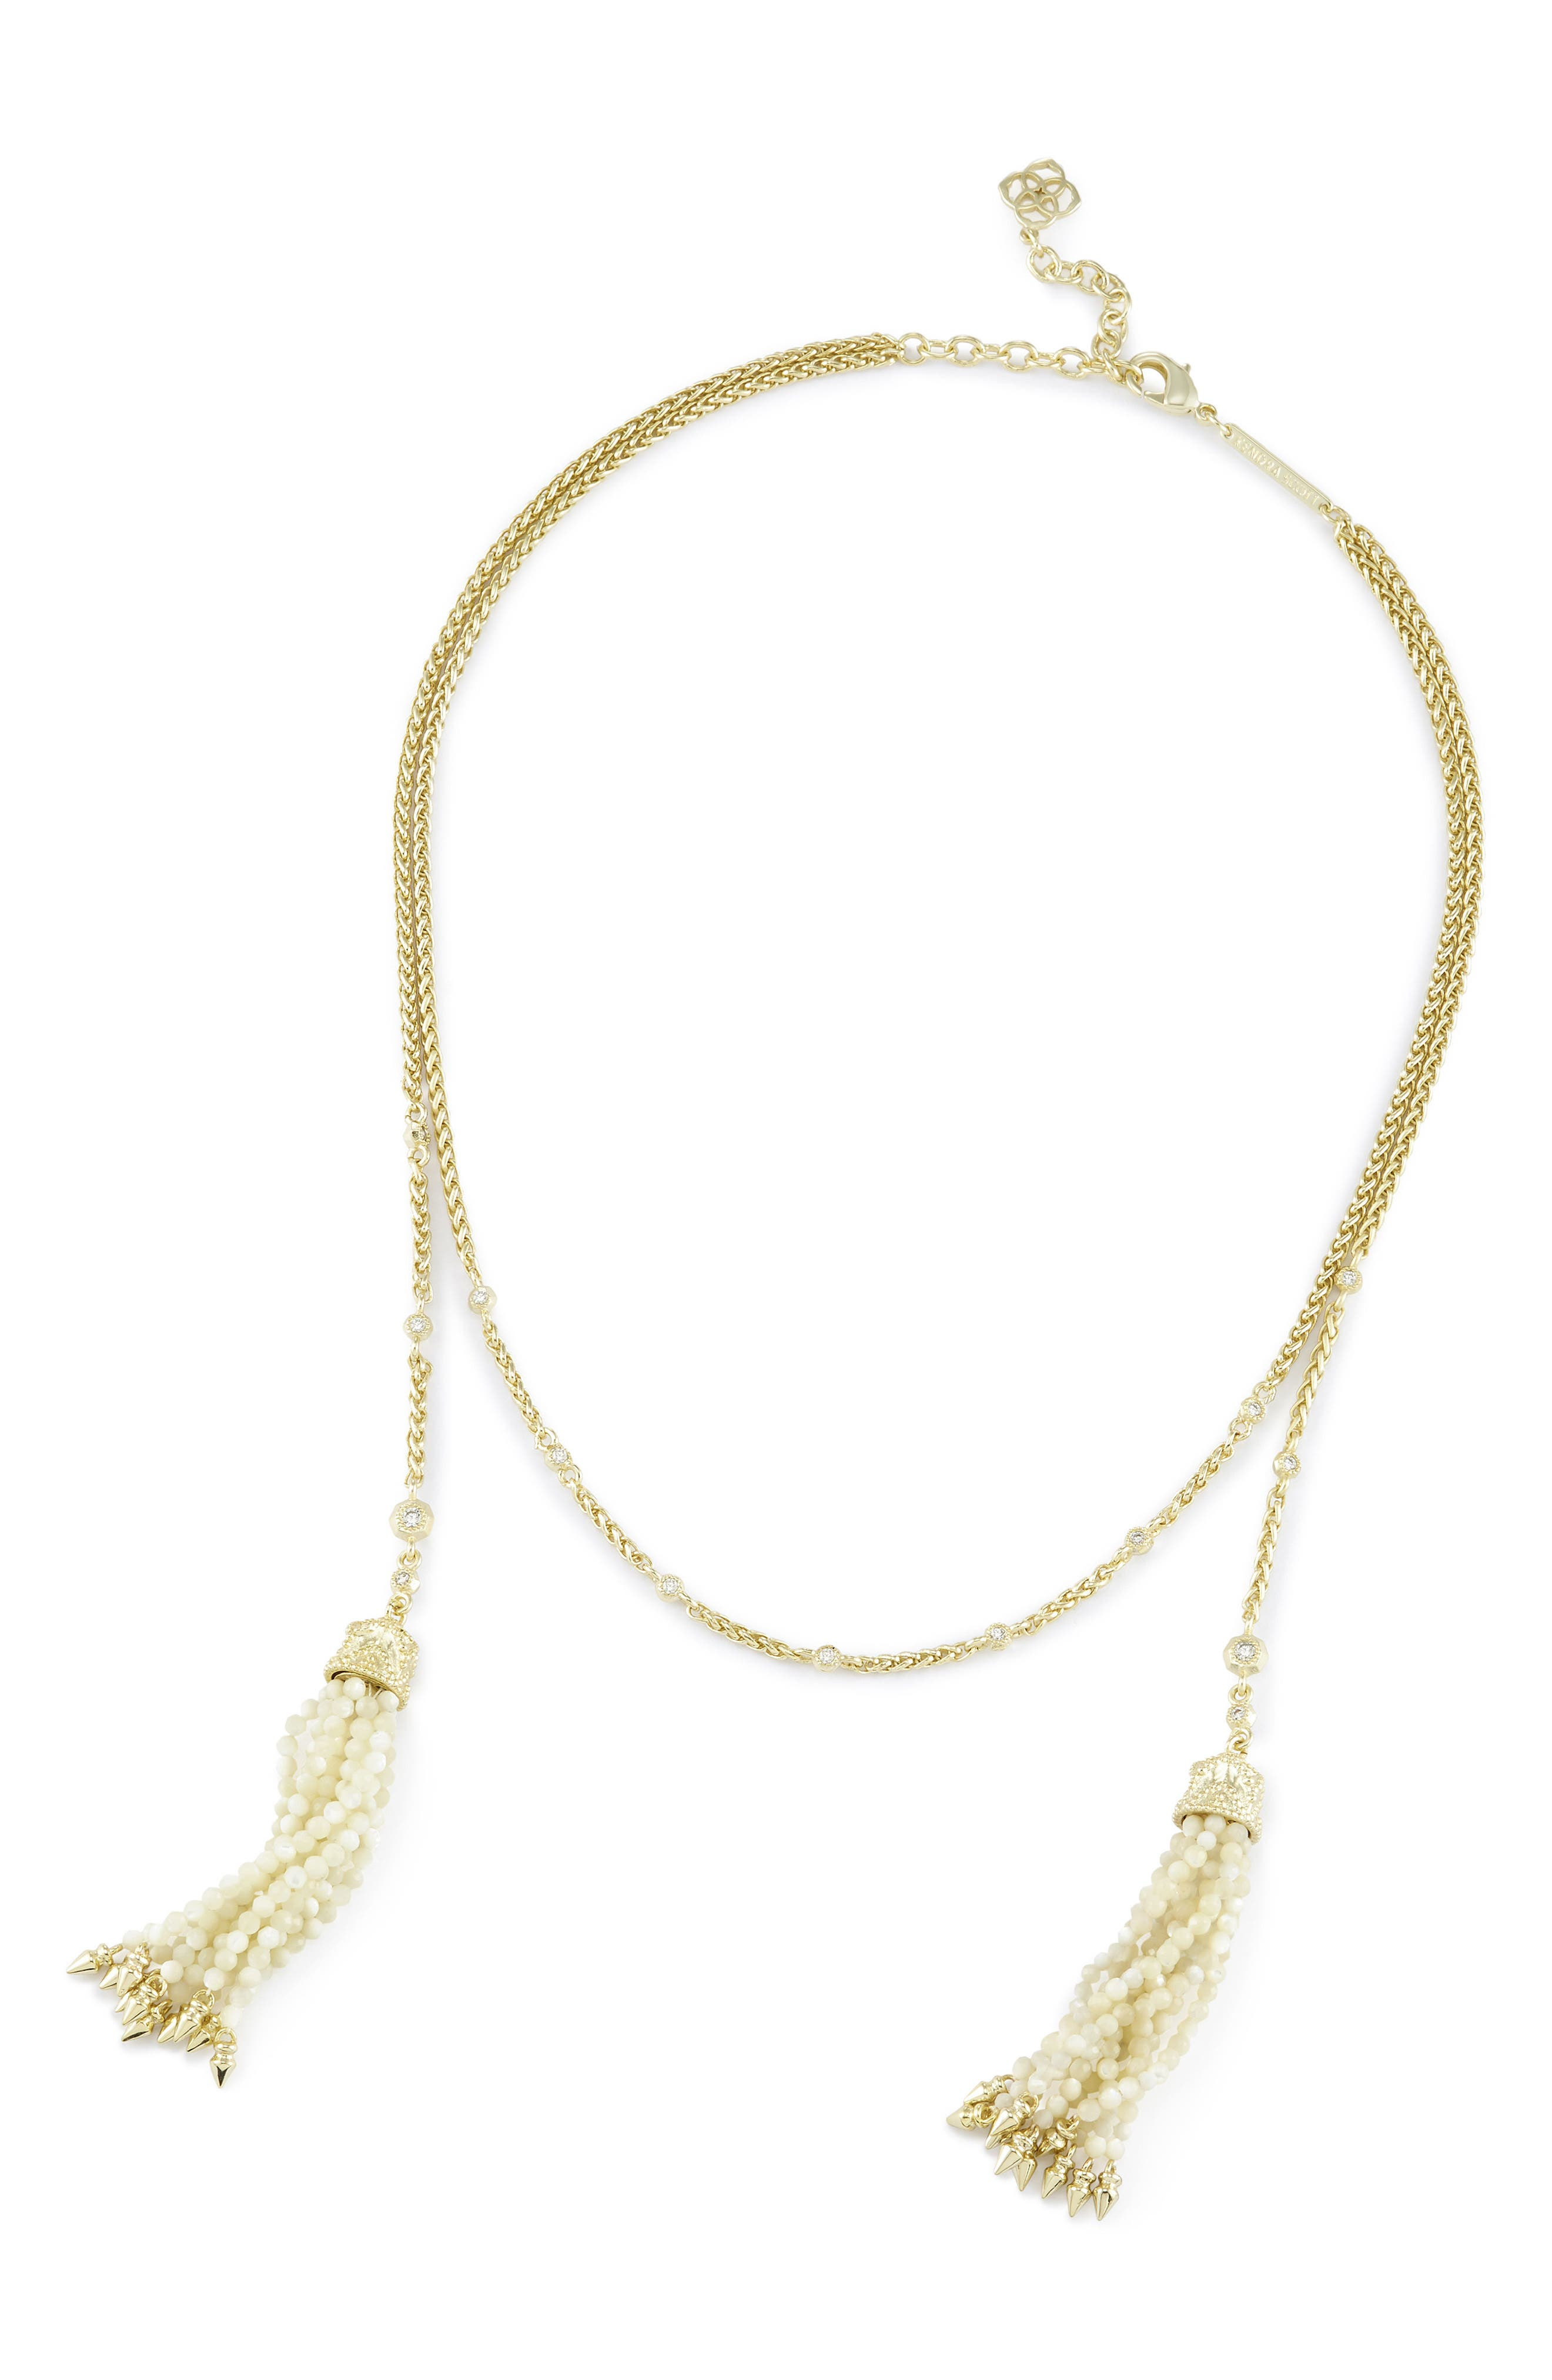 Monique Tassel Necklace,                             Alternate thumbnail 4, color,                             Ivory Mop/ Gold